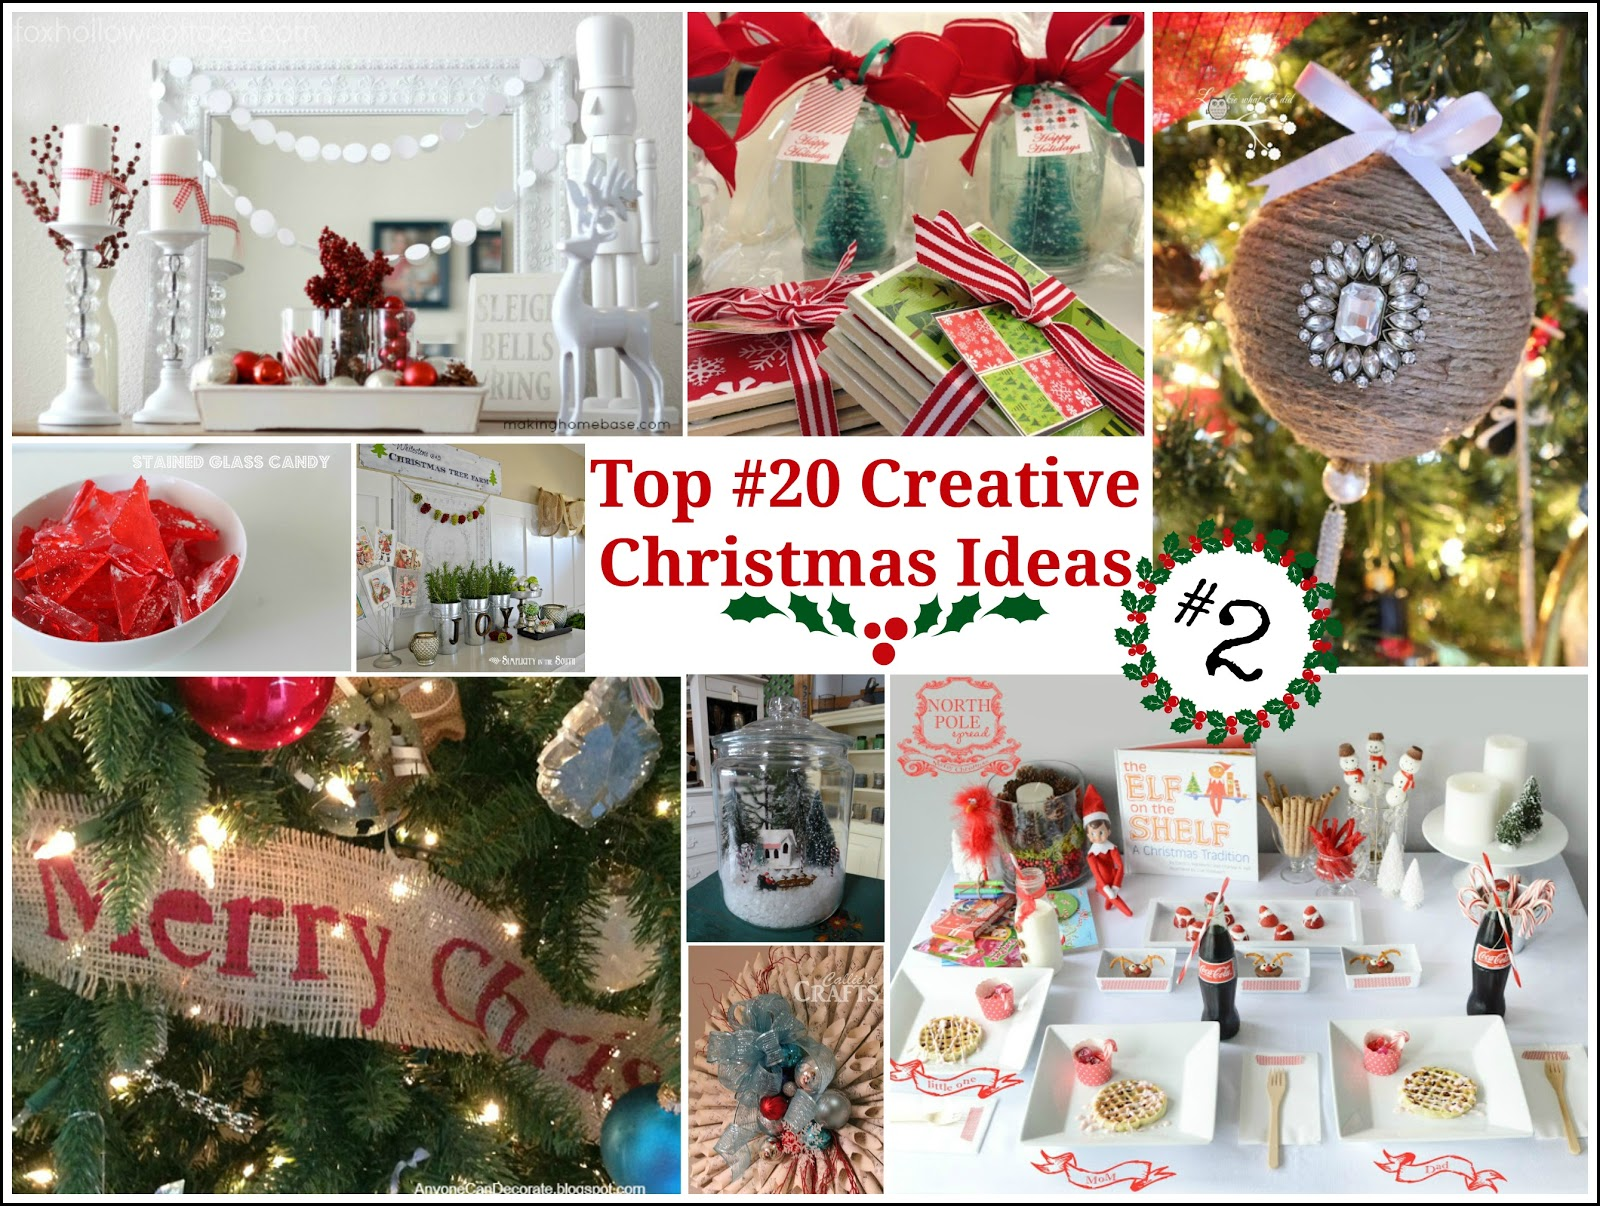 Creative Christmas Gifts.Top 20 Creative Christmas Ideas Ii Fox Hollow Cottage